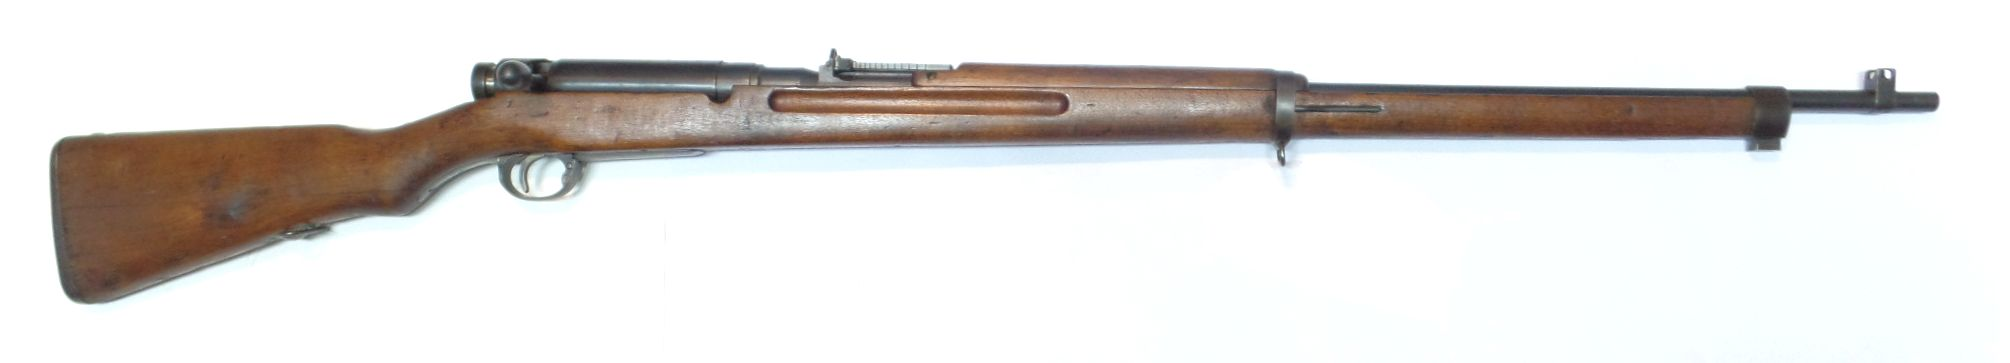 ARISAKA Type 38 calibre 6.5x50SR